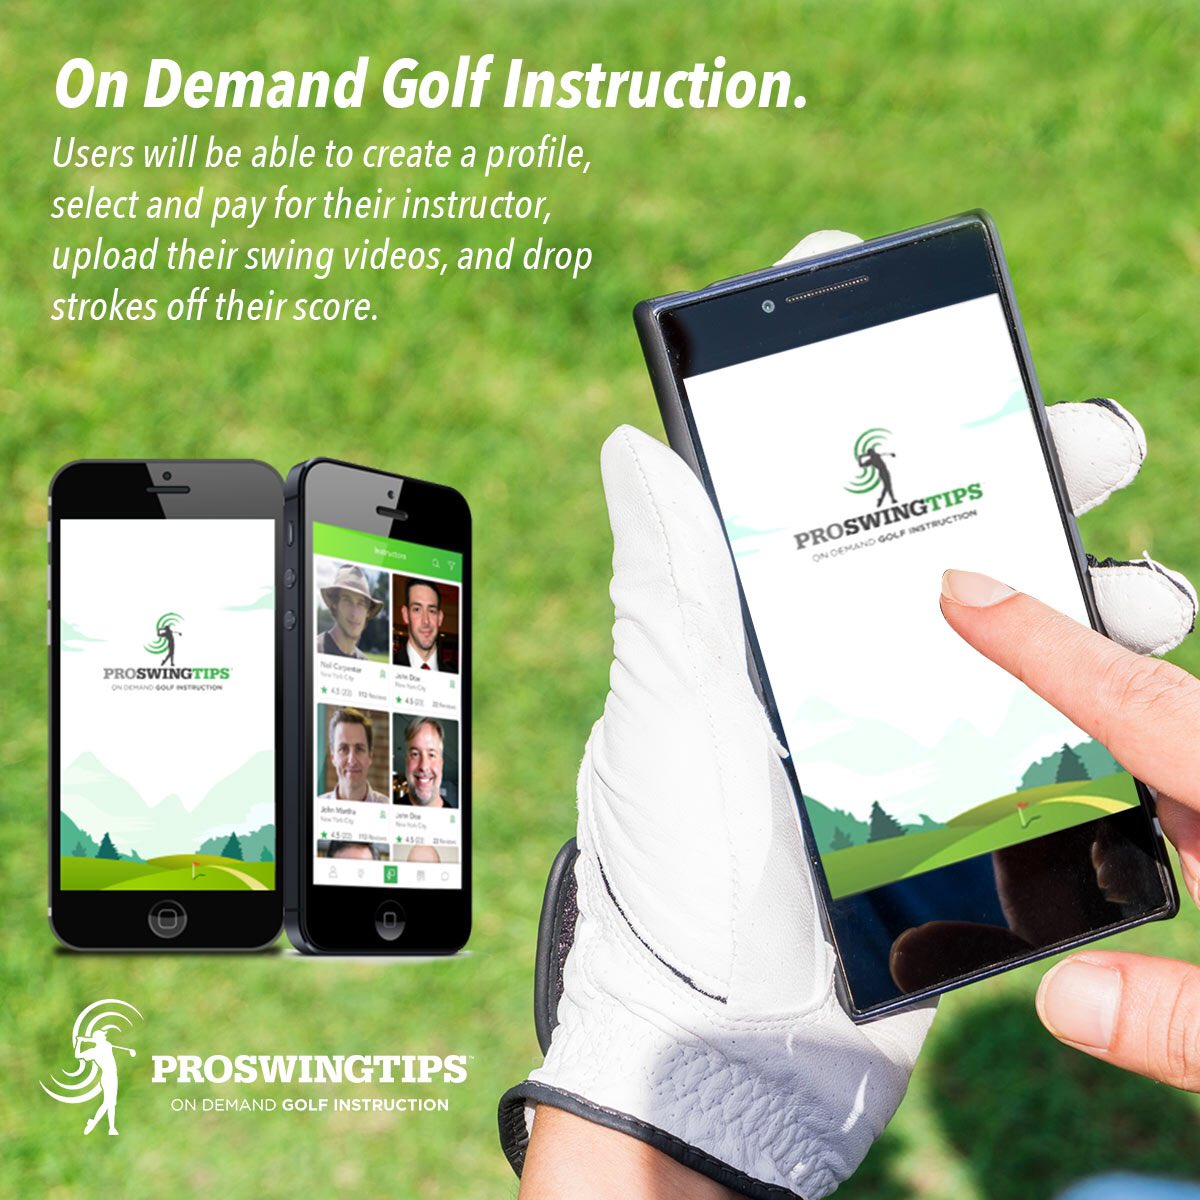 Like &amp; Retweet for chance to win free PING putter! #golf #zurichclassic #Zurich #golfing #app #iphone #android #proswingtips<br>http://pic.twitter.com/lz8u60IEWY